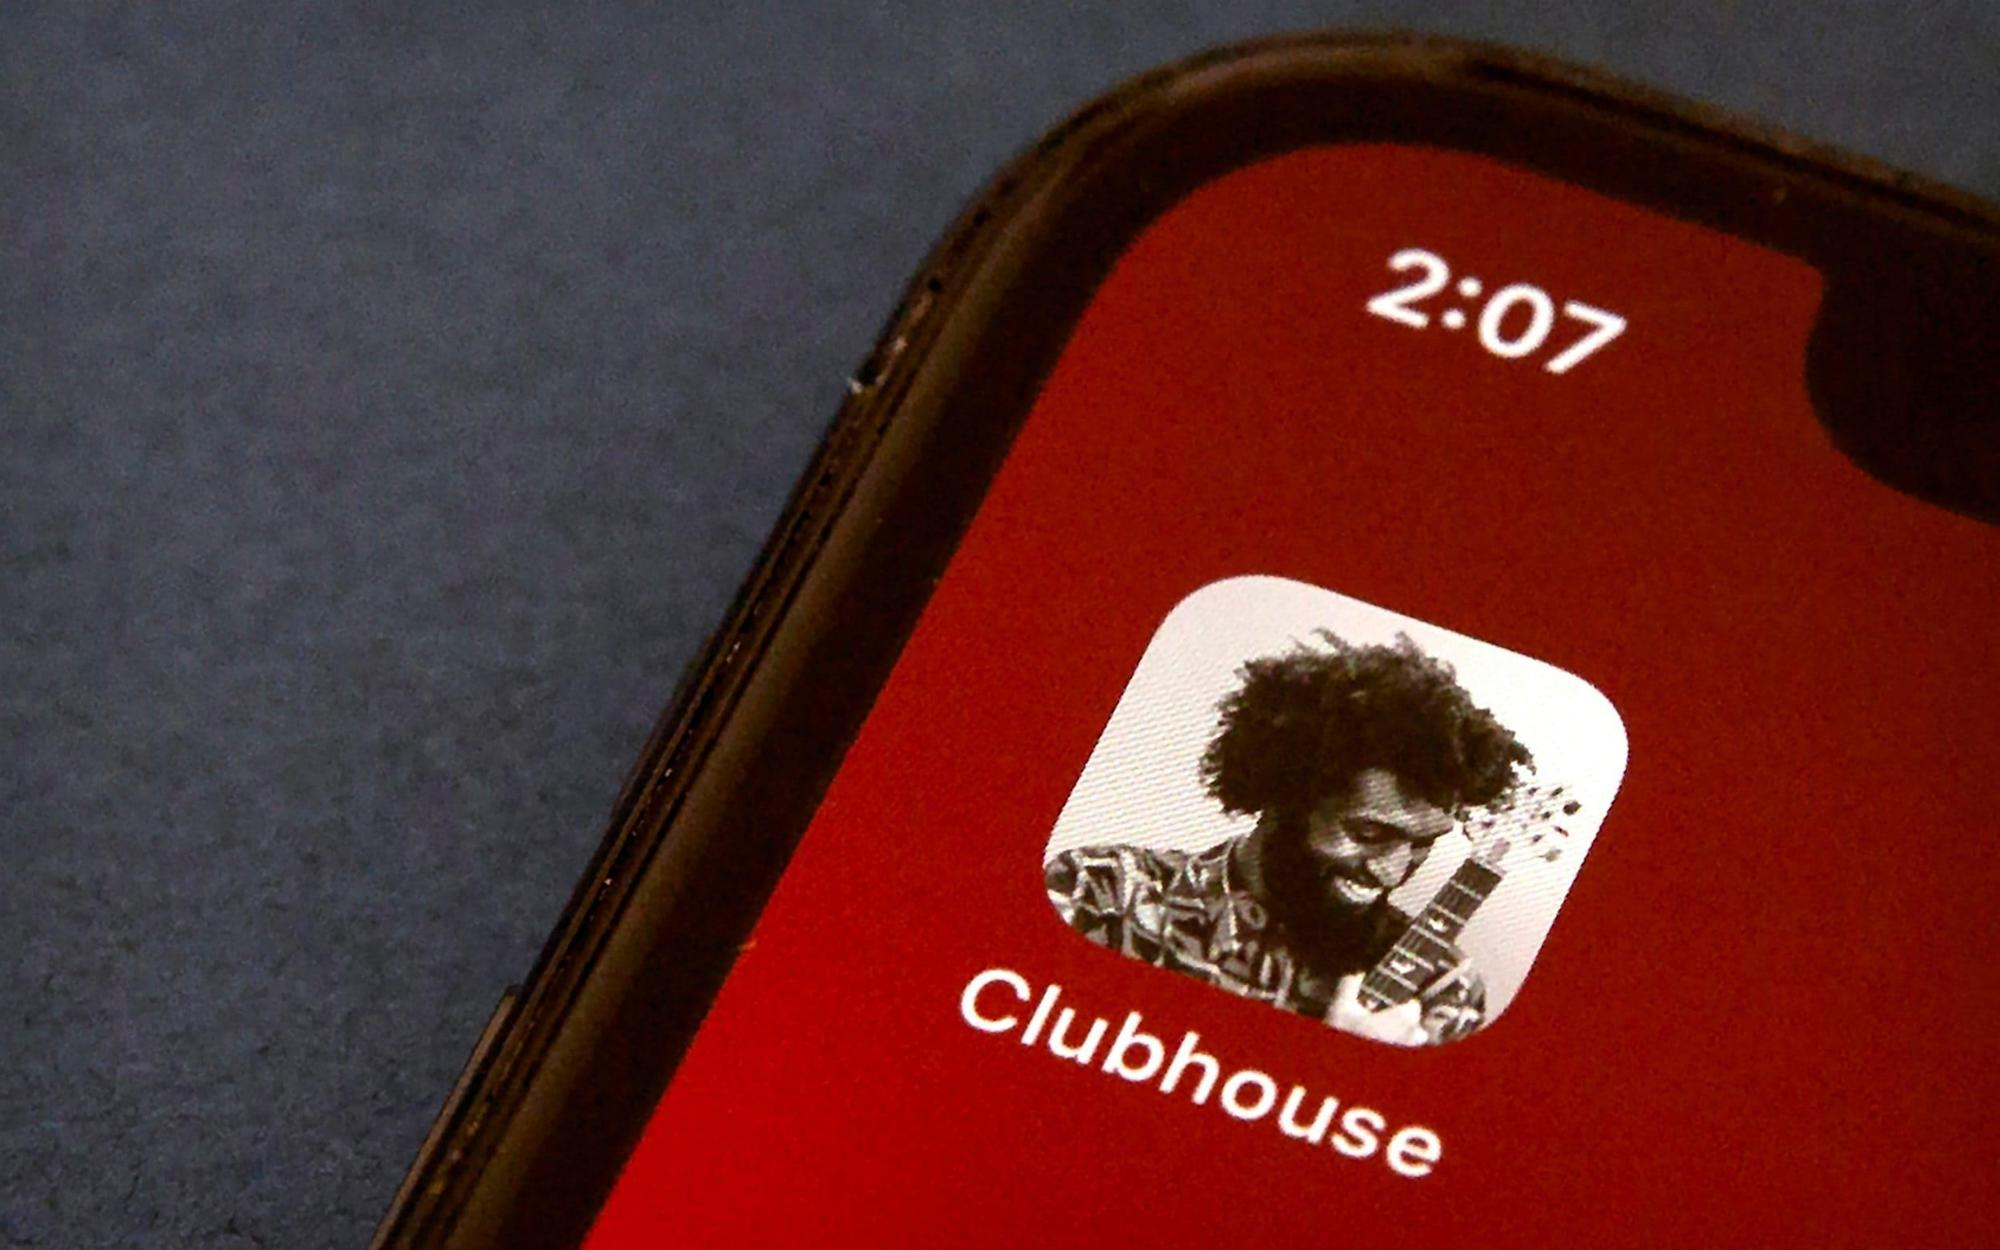 Clubhouse privacy concerns reviewed by UK data watchdog